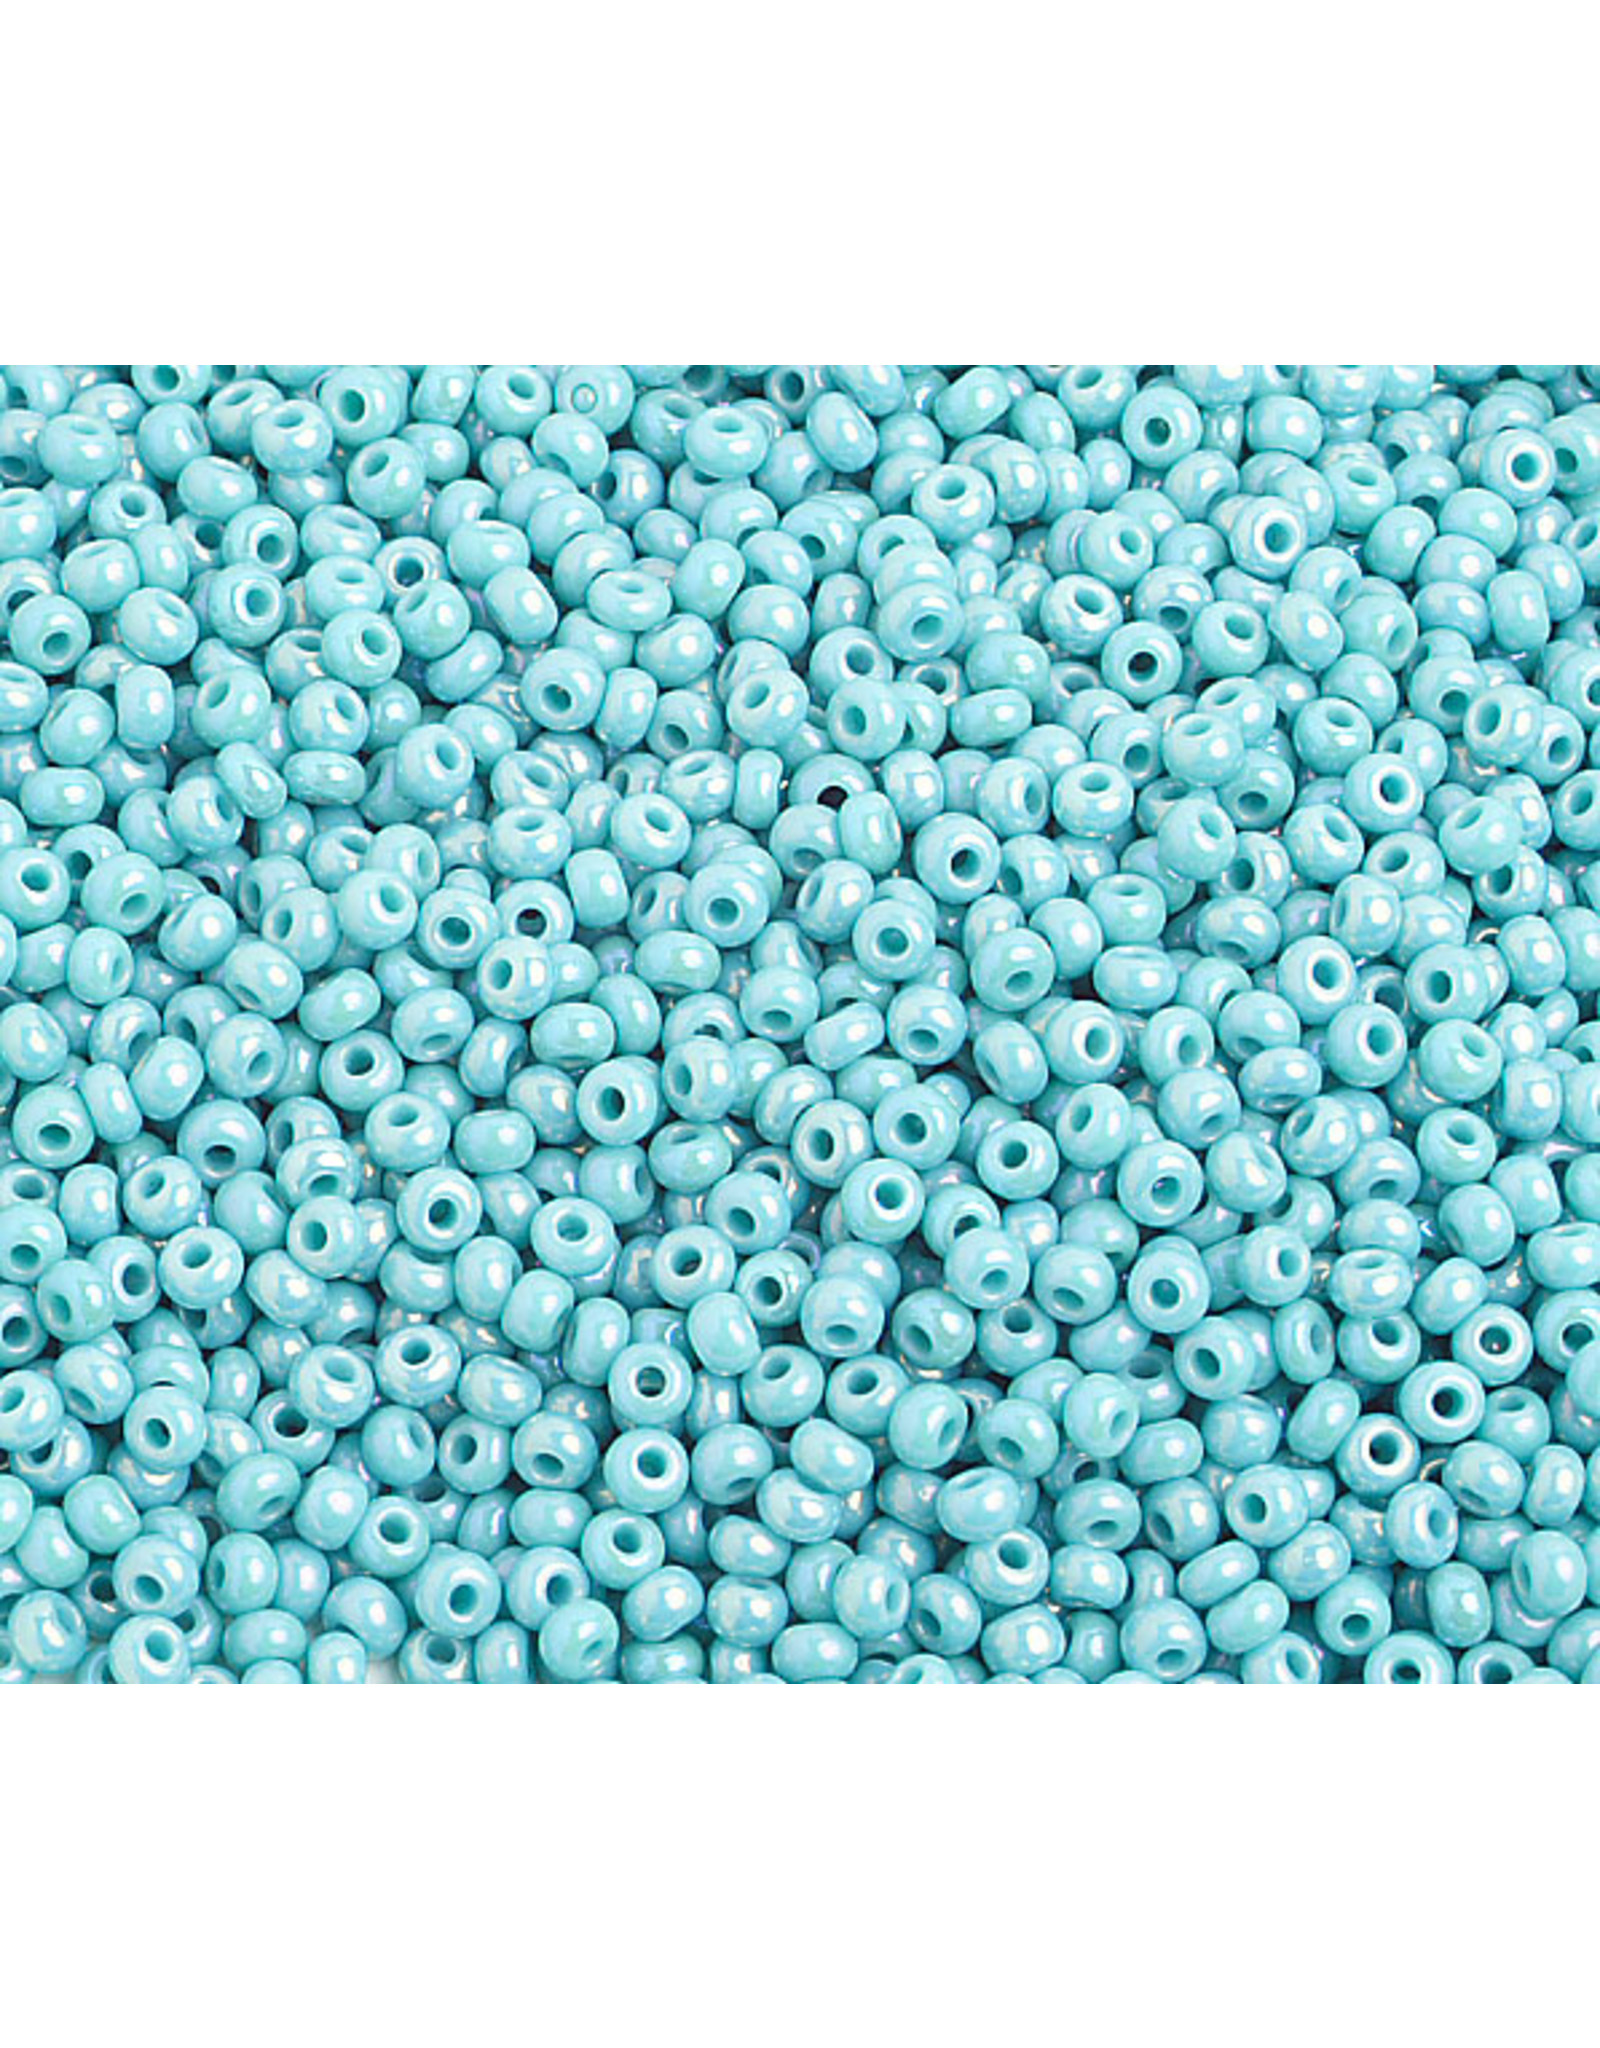 Czech 2314 10  Seed 20g  Opaque Turquoise  Blue AB